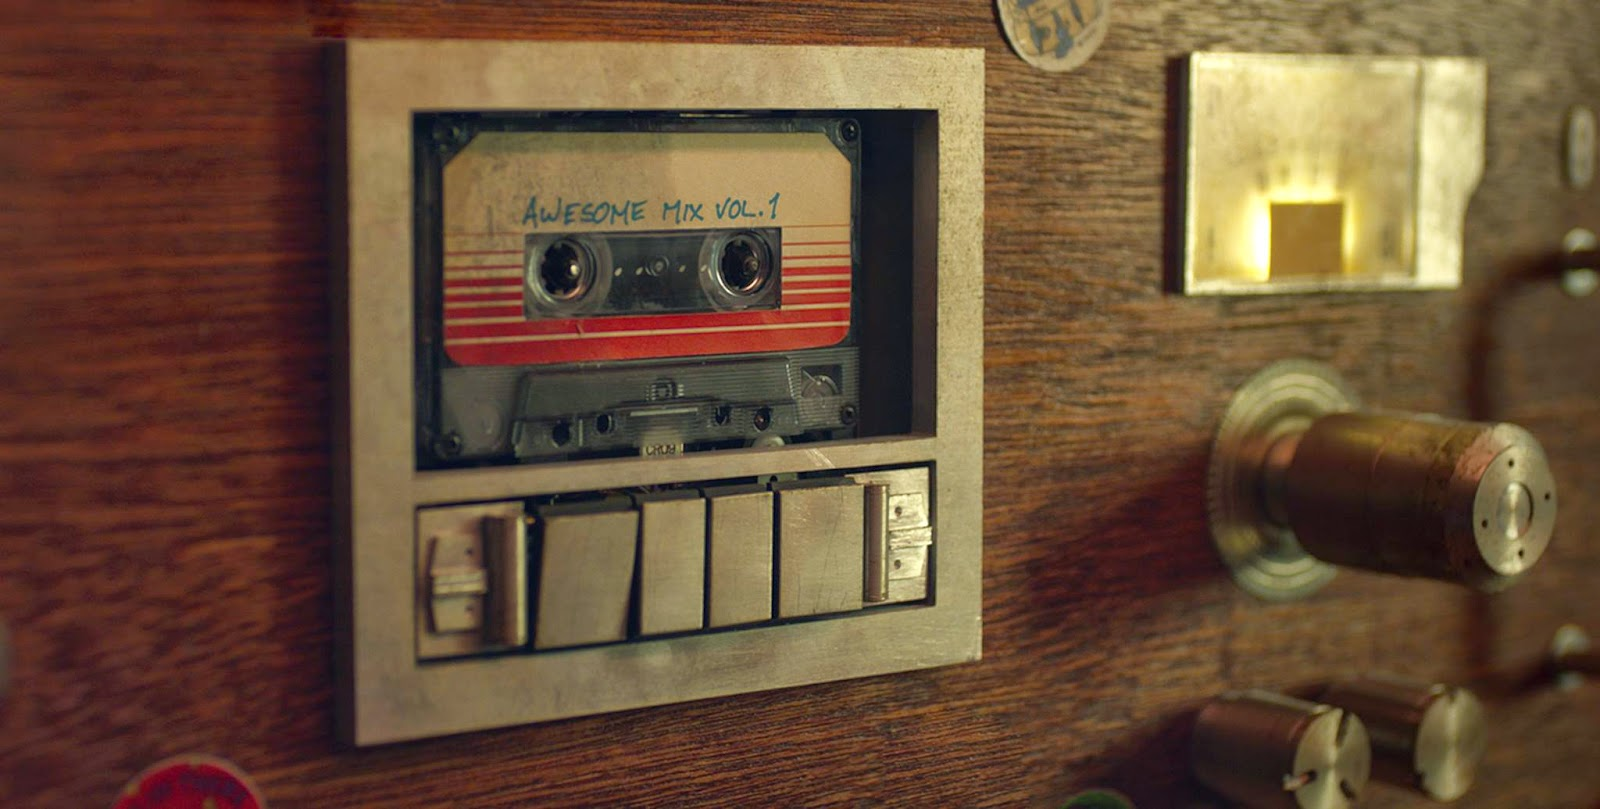 guardians of the galaxy 2 soundtrack tracklist awesome mix vol 2 3